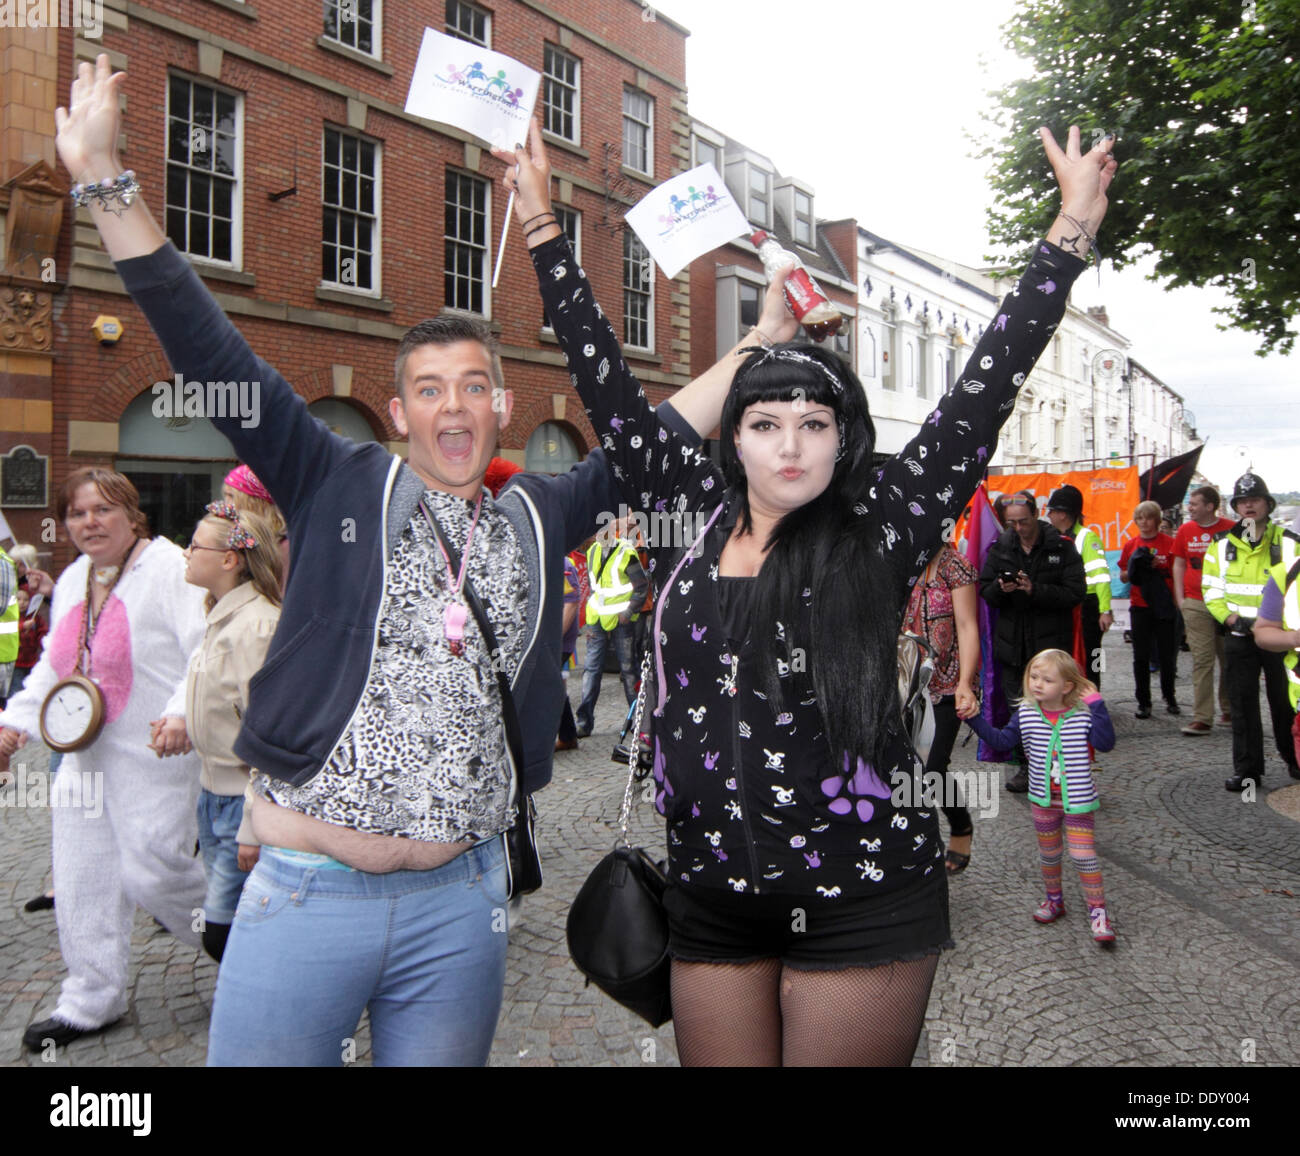 England,WA1,UK,GB,Great,britain,British,gay,lesbian,trans,transgender,LGBT,Bi,Bi-sexual,bisexual,people,men,women,marching,rights,WarringtonPride,march,marches,WBC,borough,council,unitary,local,authority,GGHT,golden,gates,housing,trust,events,celebrating,event,annual,yearly,flag,7th,seventh,couple,gotonysmith,Warington,gayrights,Sep,Sept,Stonewall,town,demonstrate,demonstrators,demonstrator,Liberation,Front,GLF,gayness,gayboy,boy,boys,girls,girl,population,world,worldpride,Canal,St,street,rugby,player,players,team,cup,rugbyworldcup,07/09/2013,09/07/2013,Rylands,Palmyra,Sq,square,Bond,Bridge,WarringtonLGBT,LGBTWarrington,members,volunteers,stigma,services,service,HIV,aids,sexuality,sex,lgbtwarrington.co.uk,WA1,1JL,WA11JL,black,dress,Buy Pictures of,Buy Images Of